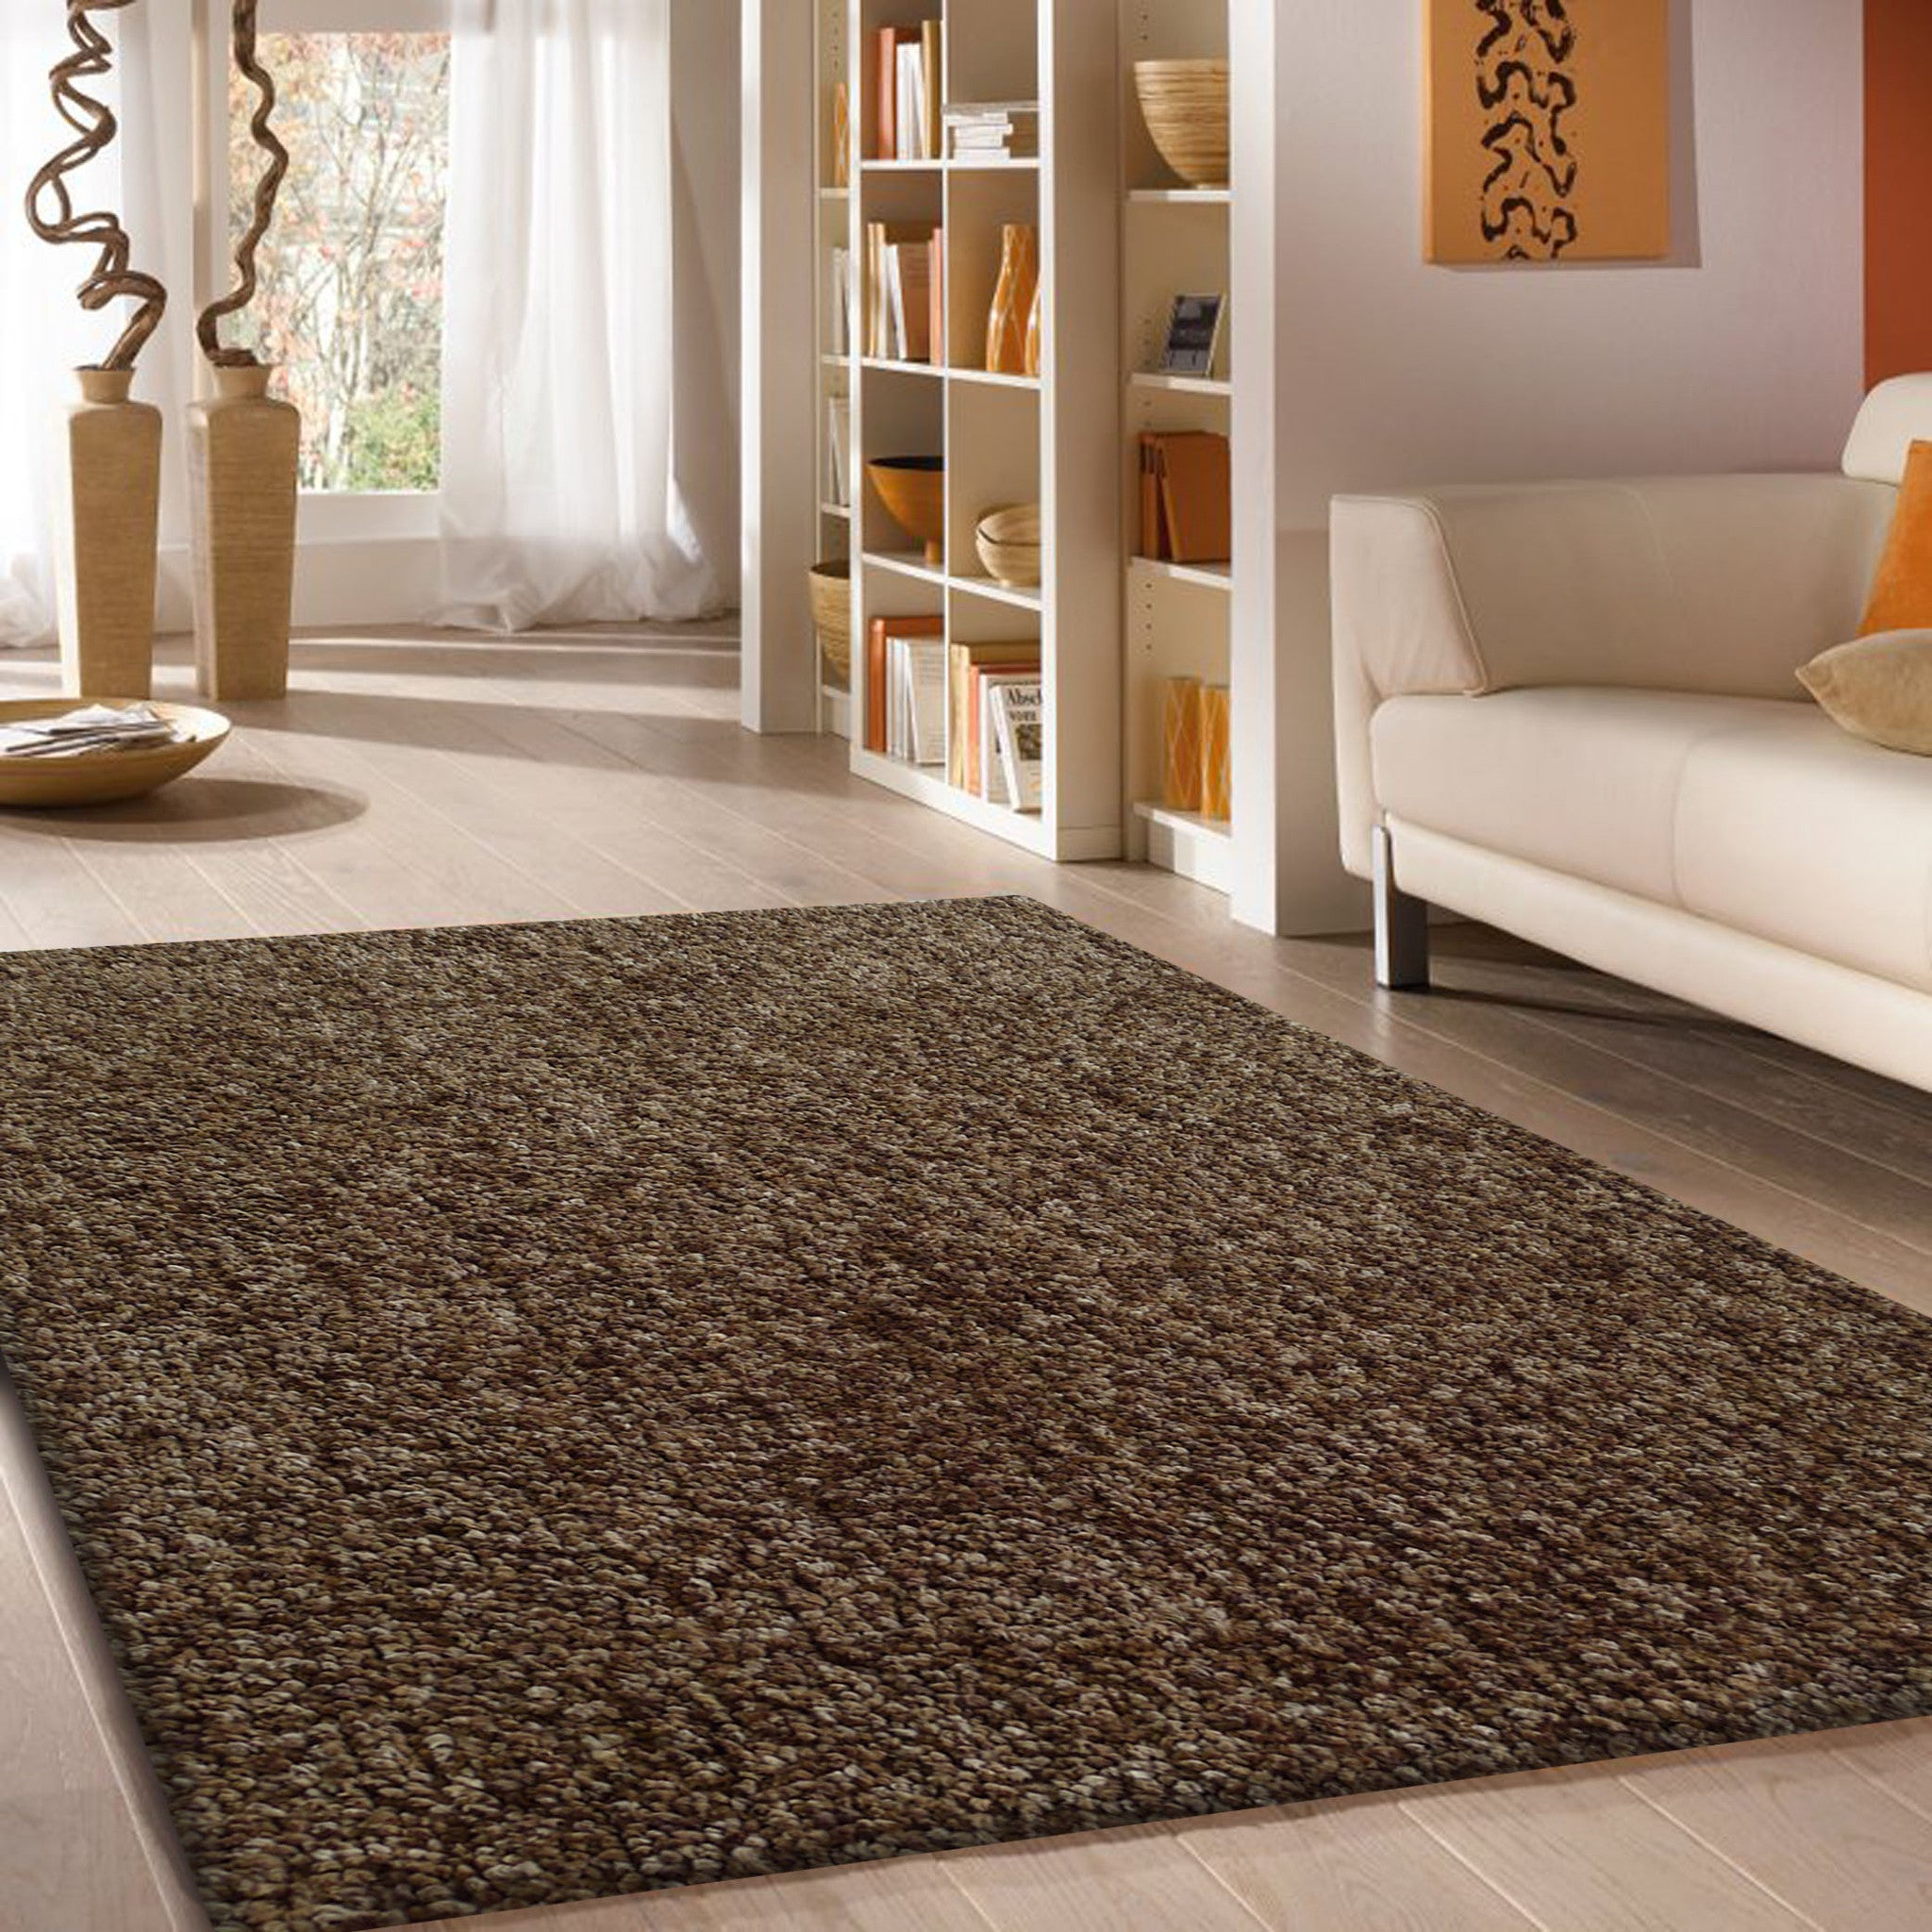 Rugs · 2 Piece Set | Solid Thick Winter Grey Plush Shag Area Rug With Rug  Pad